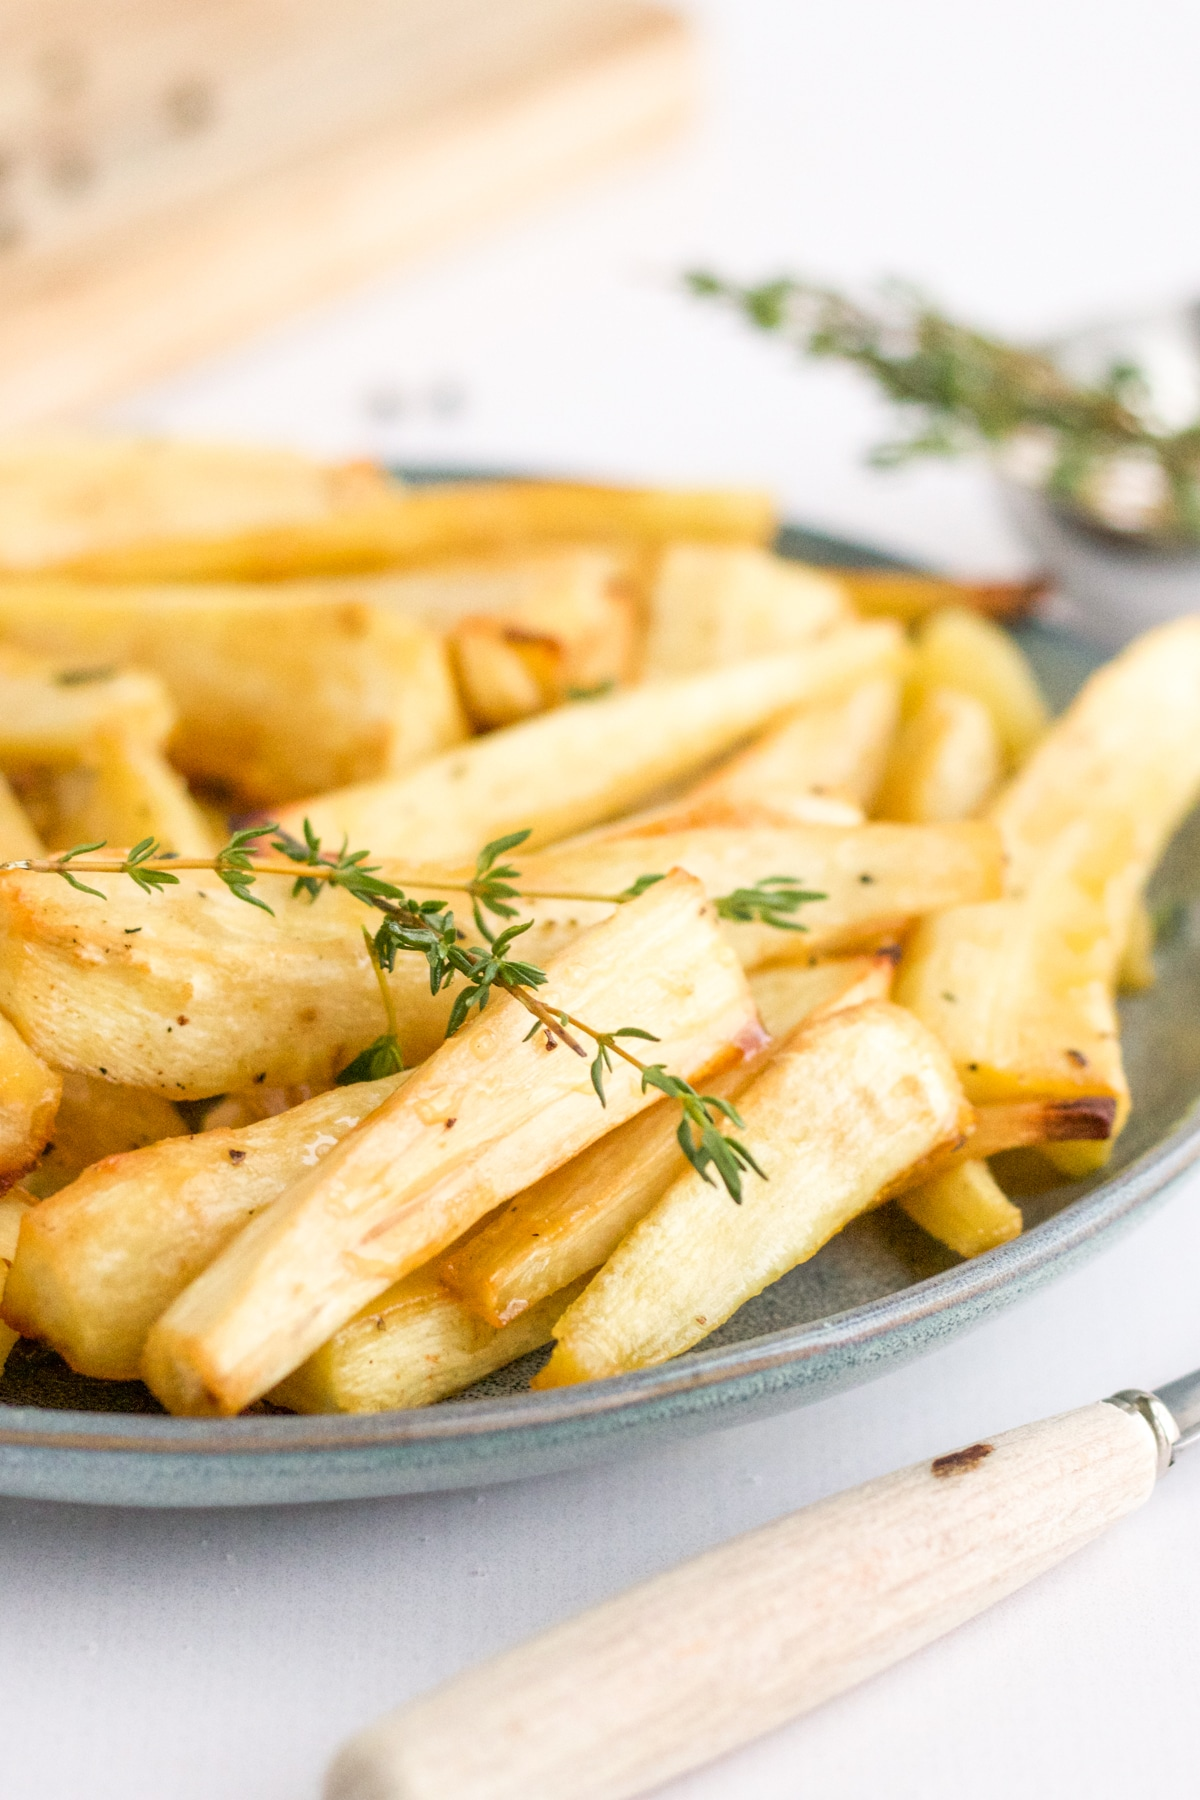 plate of roasted parsnips with fork and thyme garnish